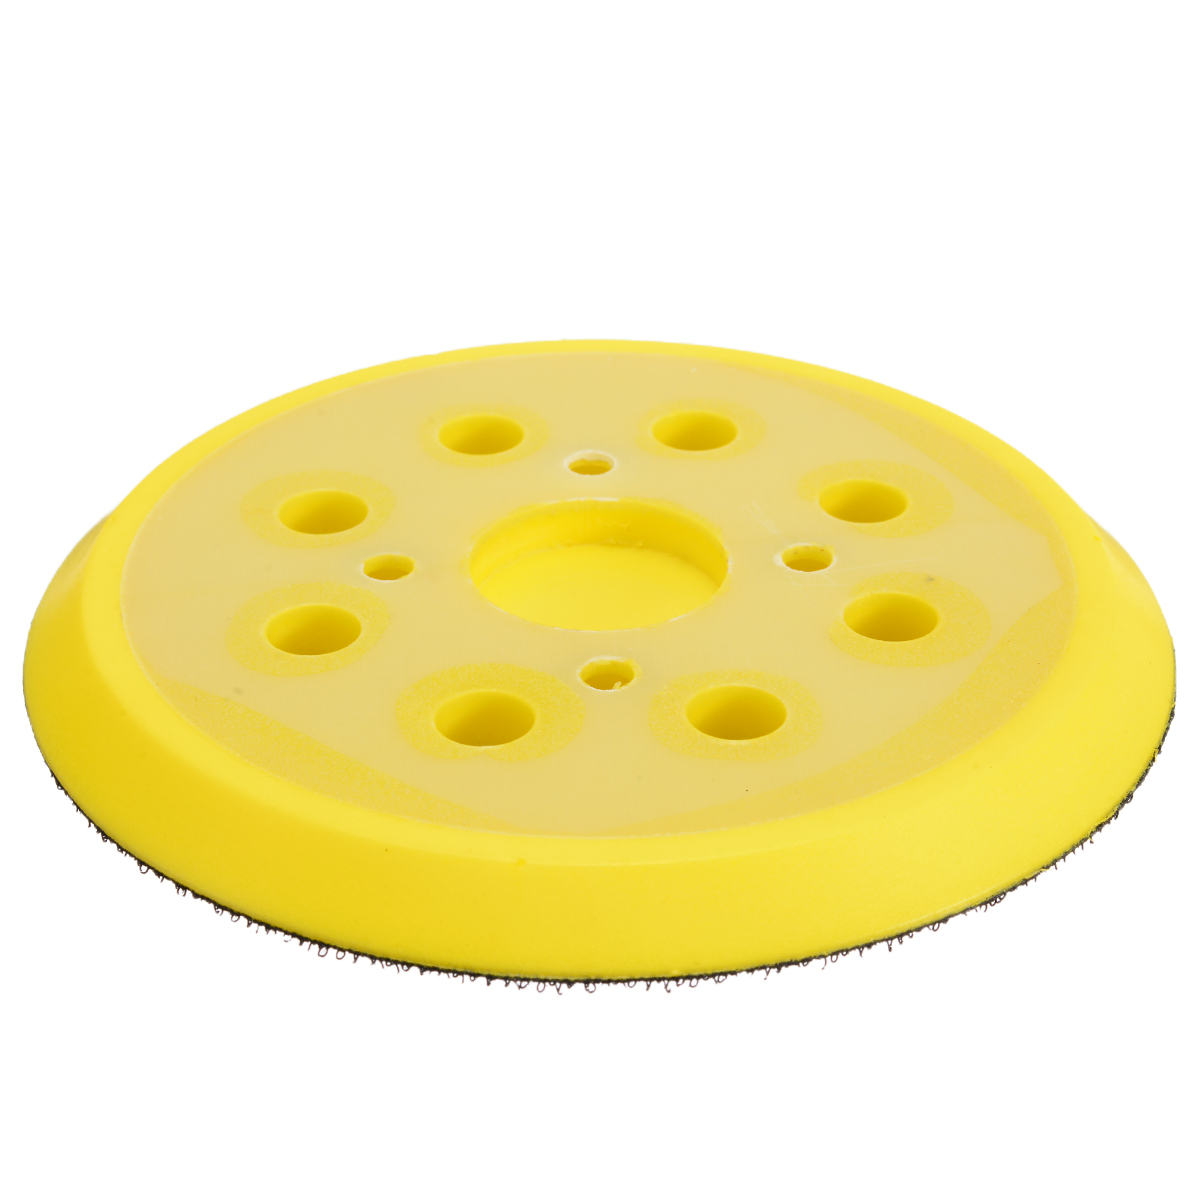 Image 3 - 5 Inch 8 Hole 125mm Back up Sanding Pad 4 Nails Hook and Loop Sander Backing Pad for Electric Grinder Power Tools Accessories-in Abrasive Tools from Tools